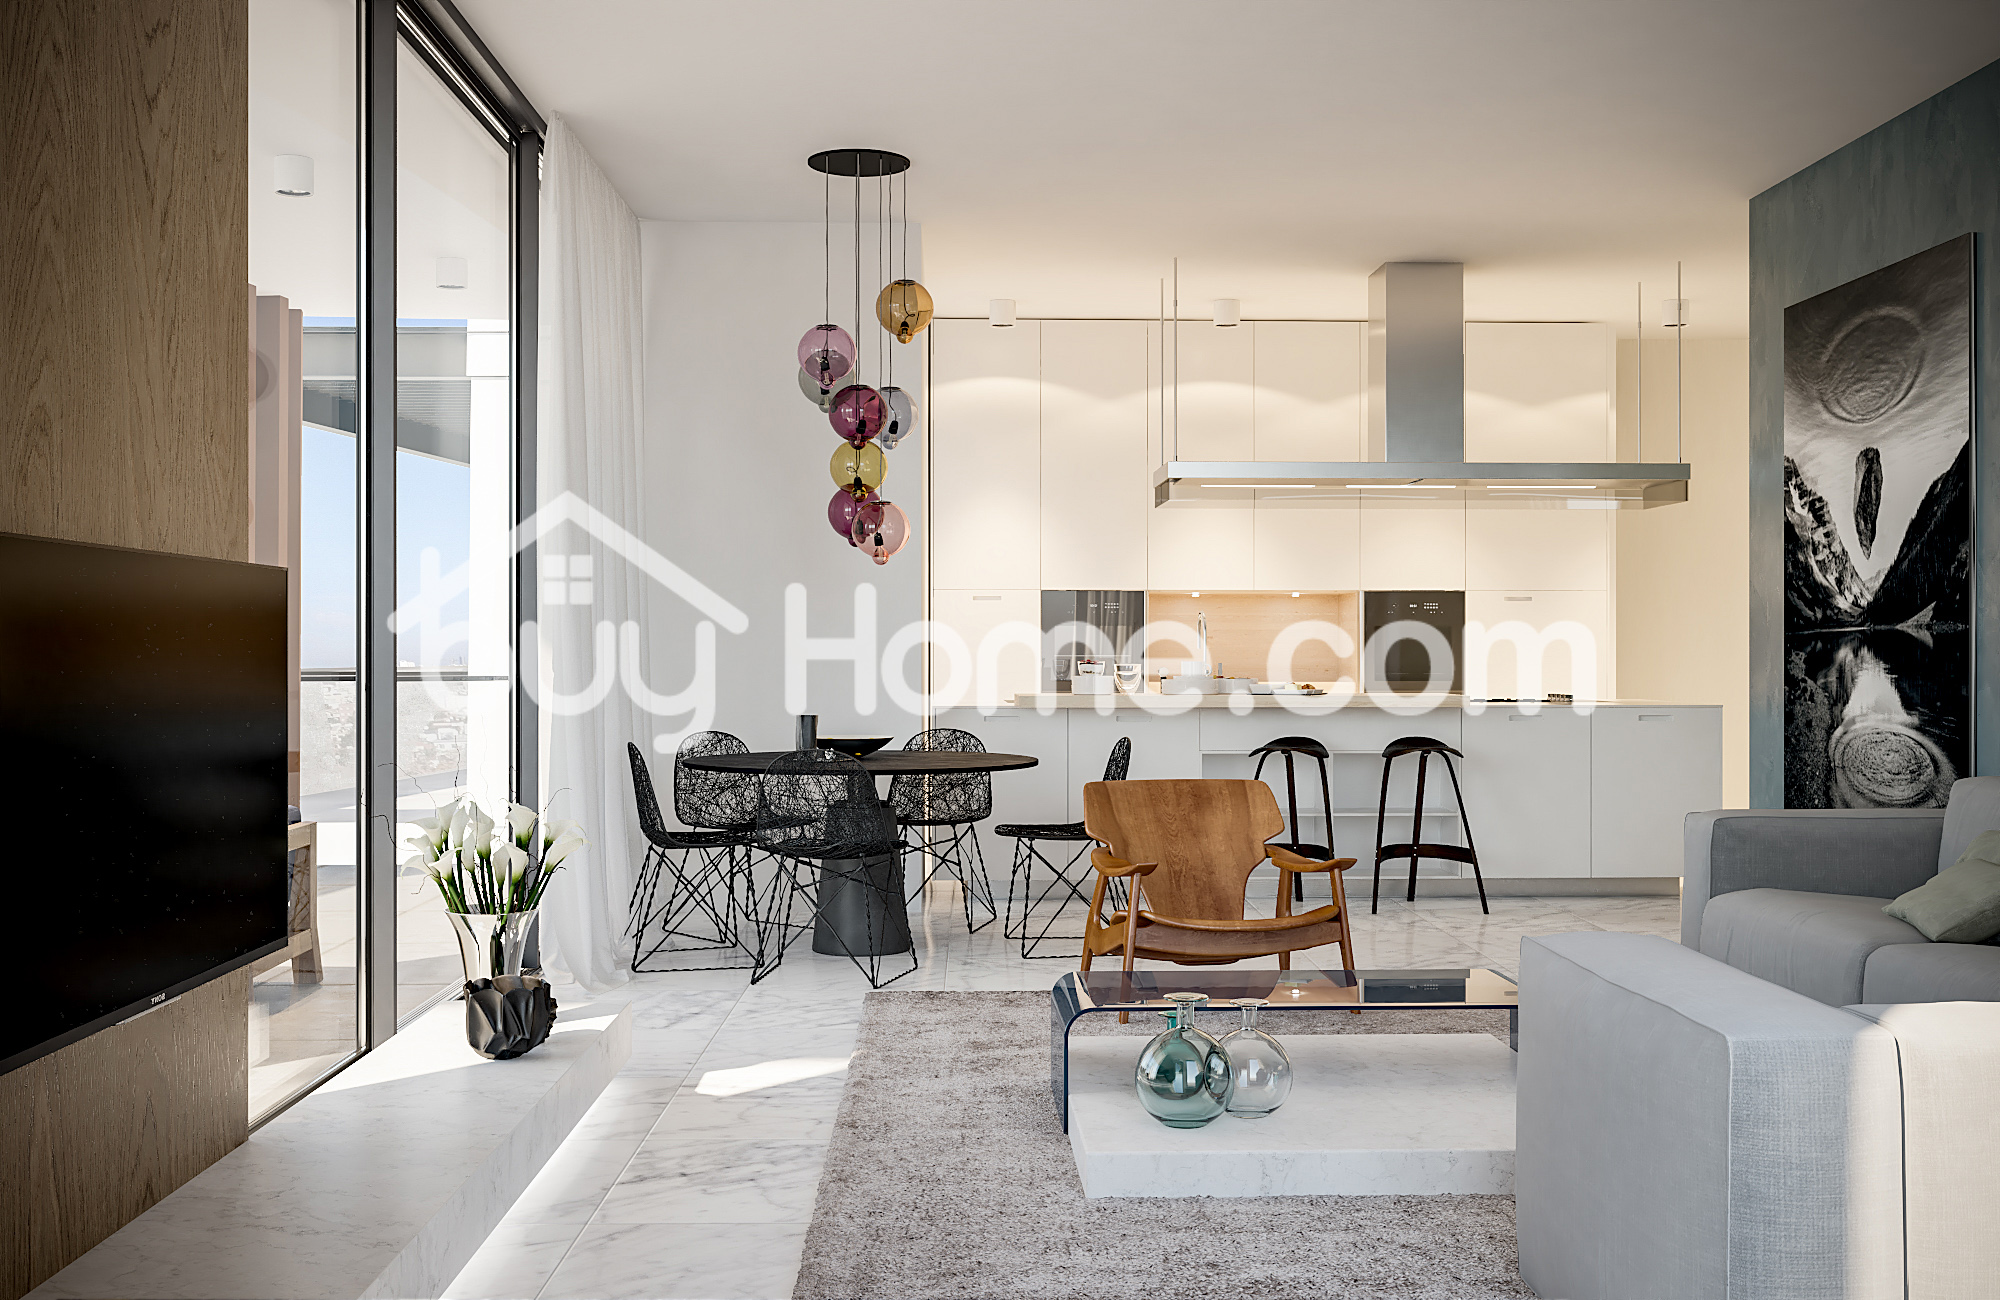 11 Apartment Building | BuyHome